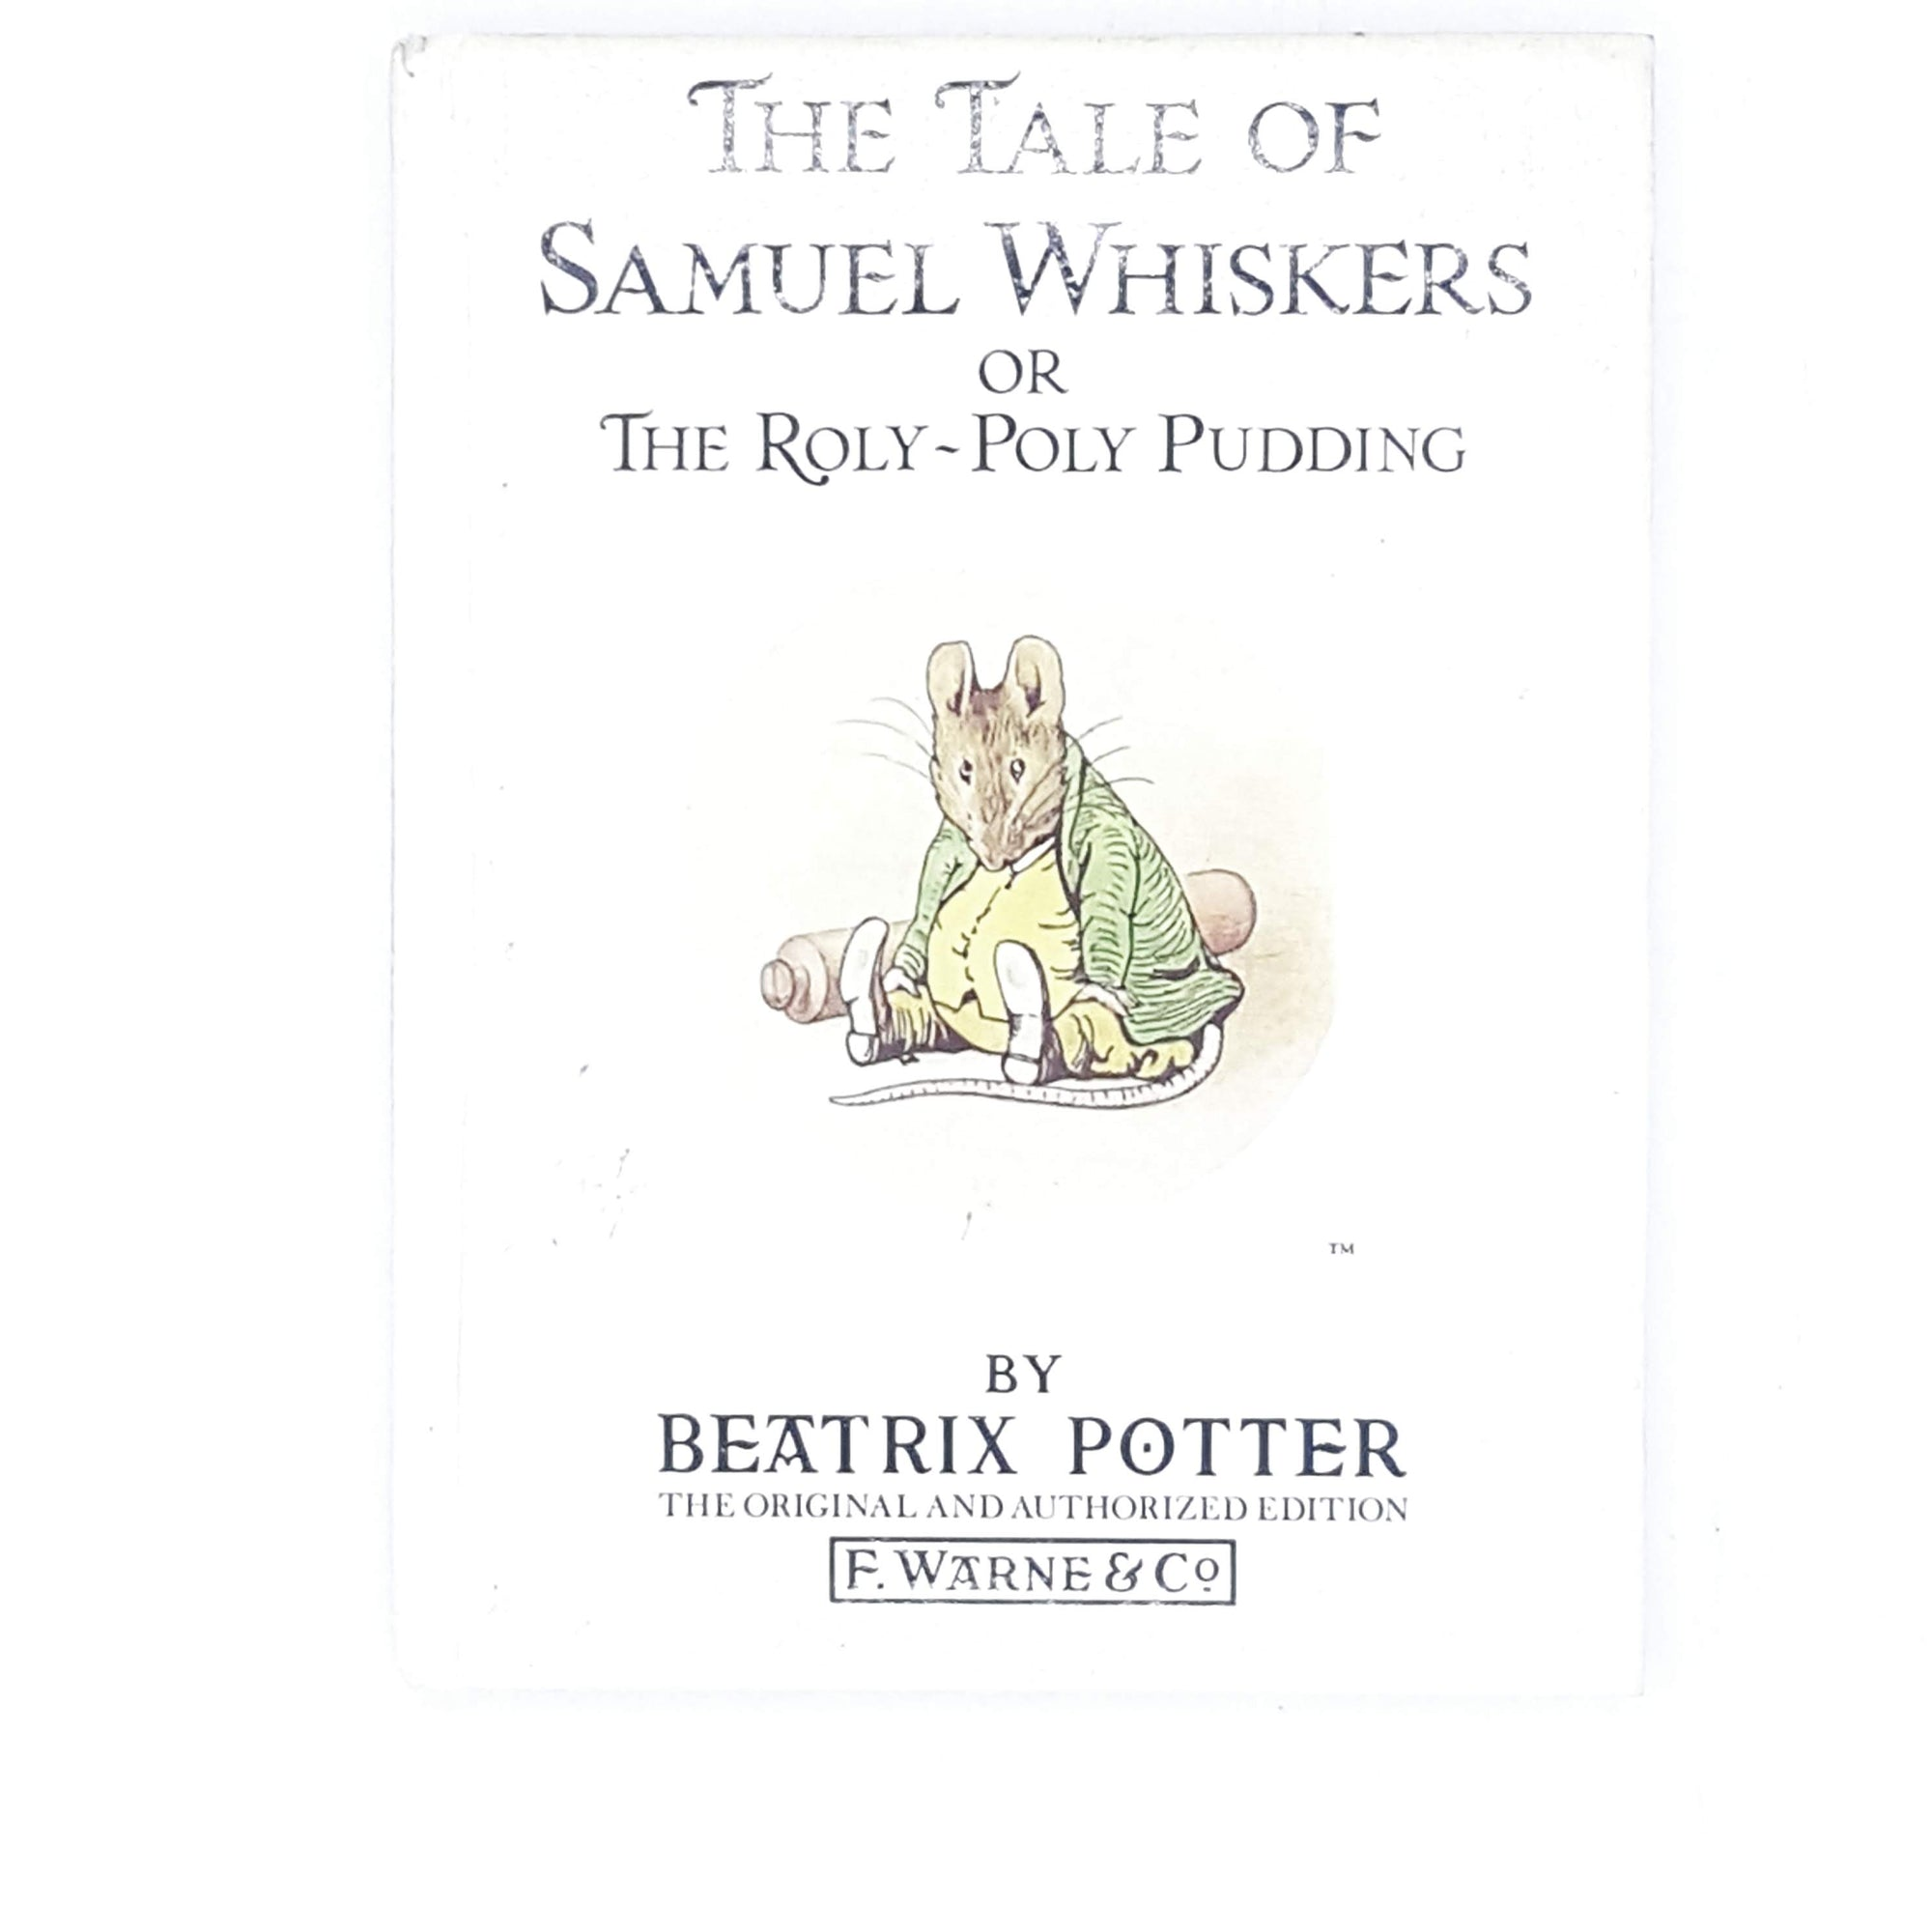 Beatrix Potter's The Tale of Samuel Whiskers 1986